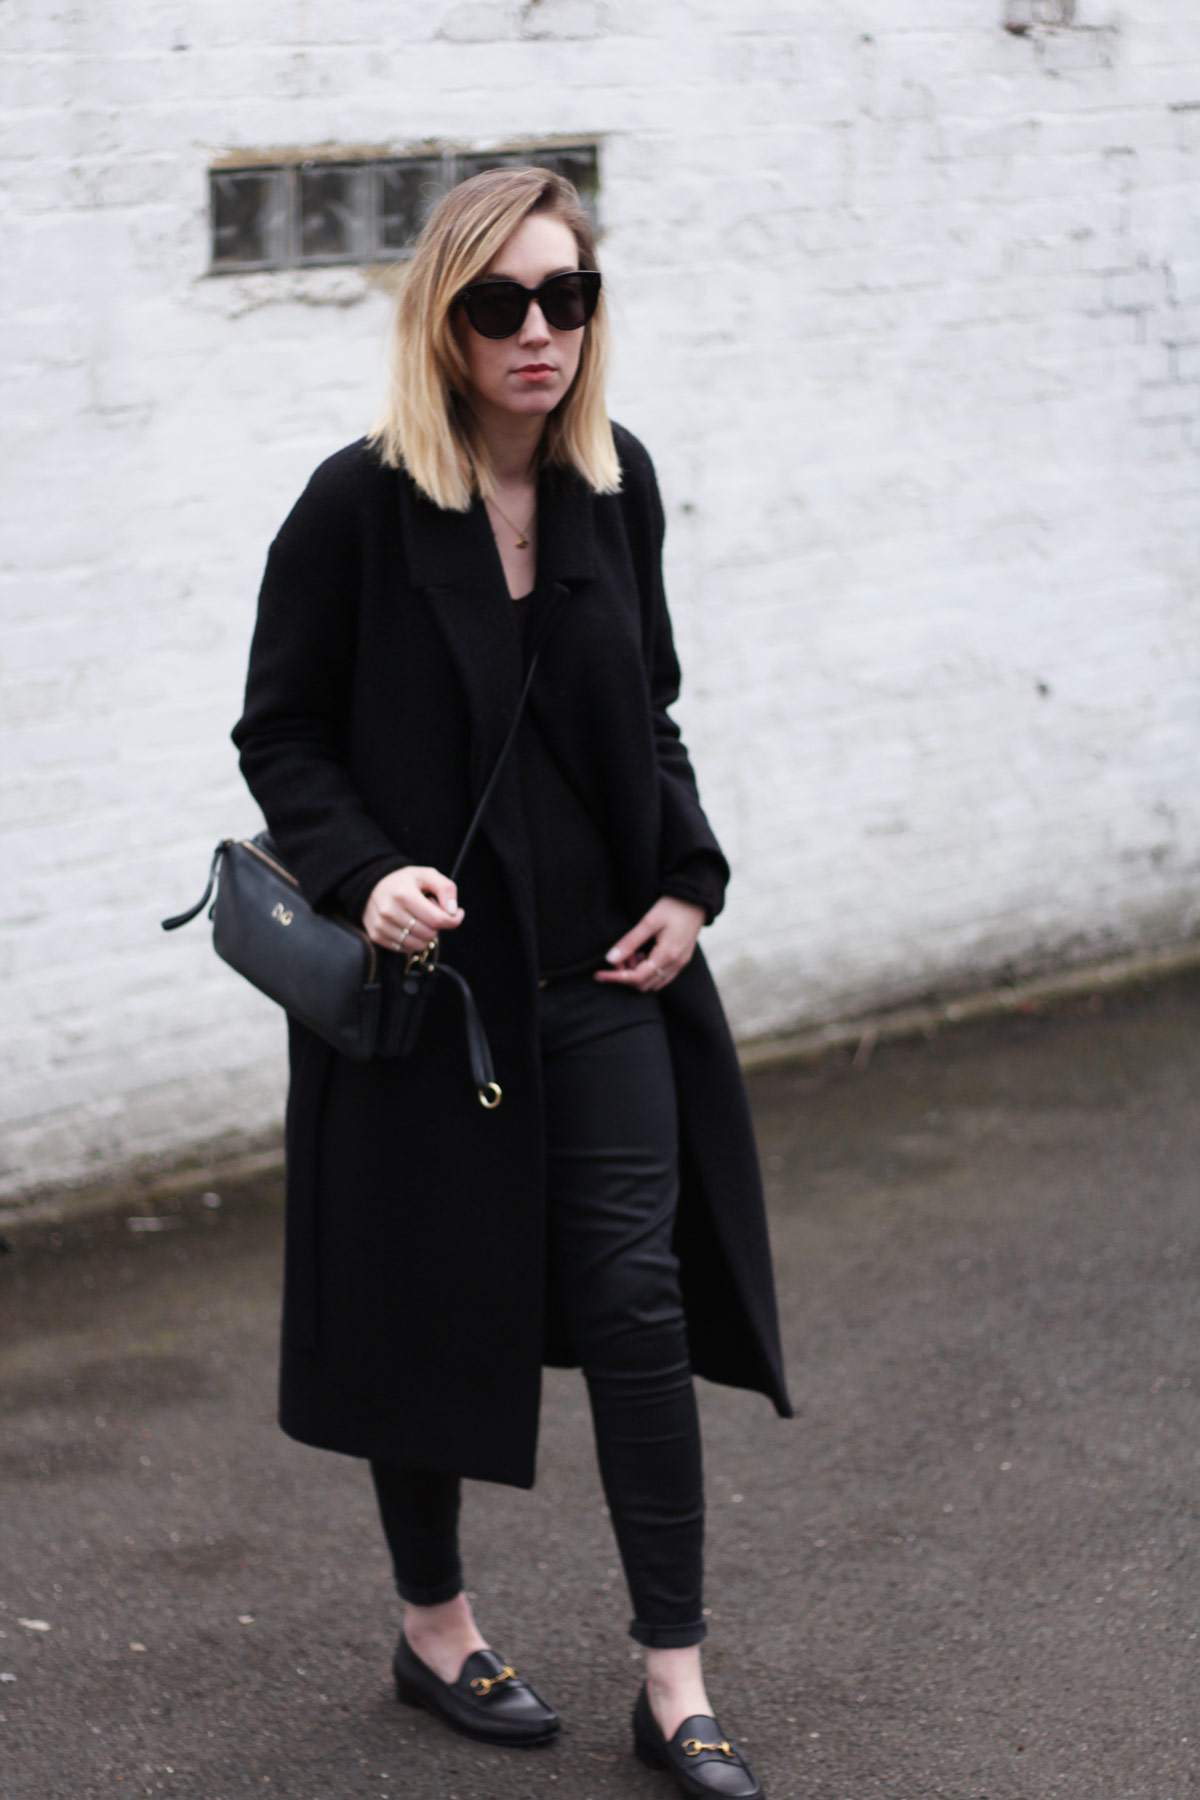 staple-all-black-look-gucci-loafers-cos-belted-coat-d&g-bag-3